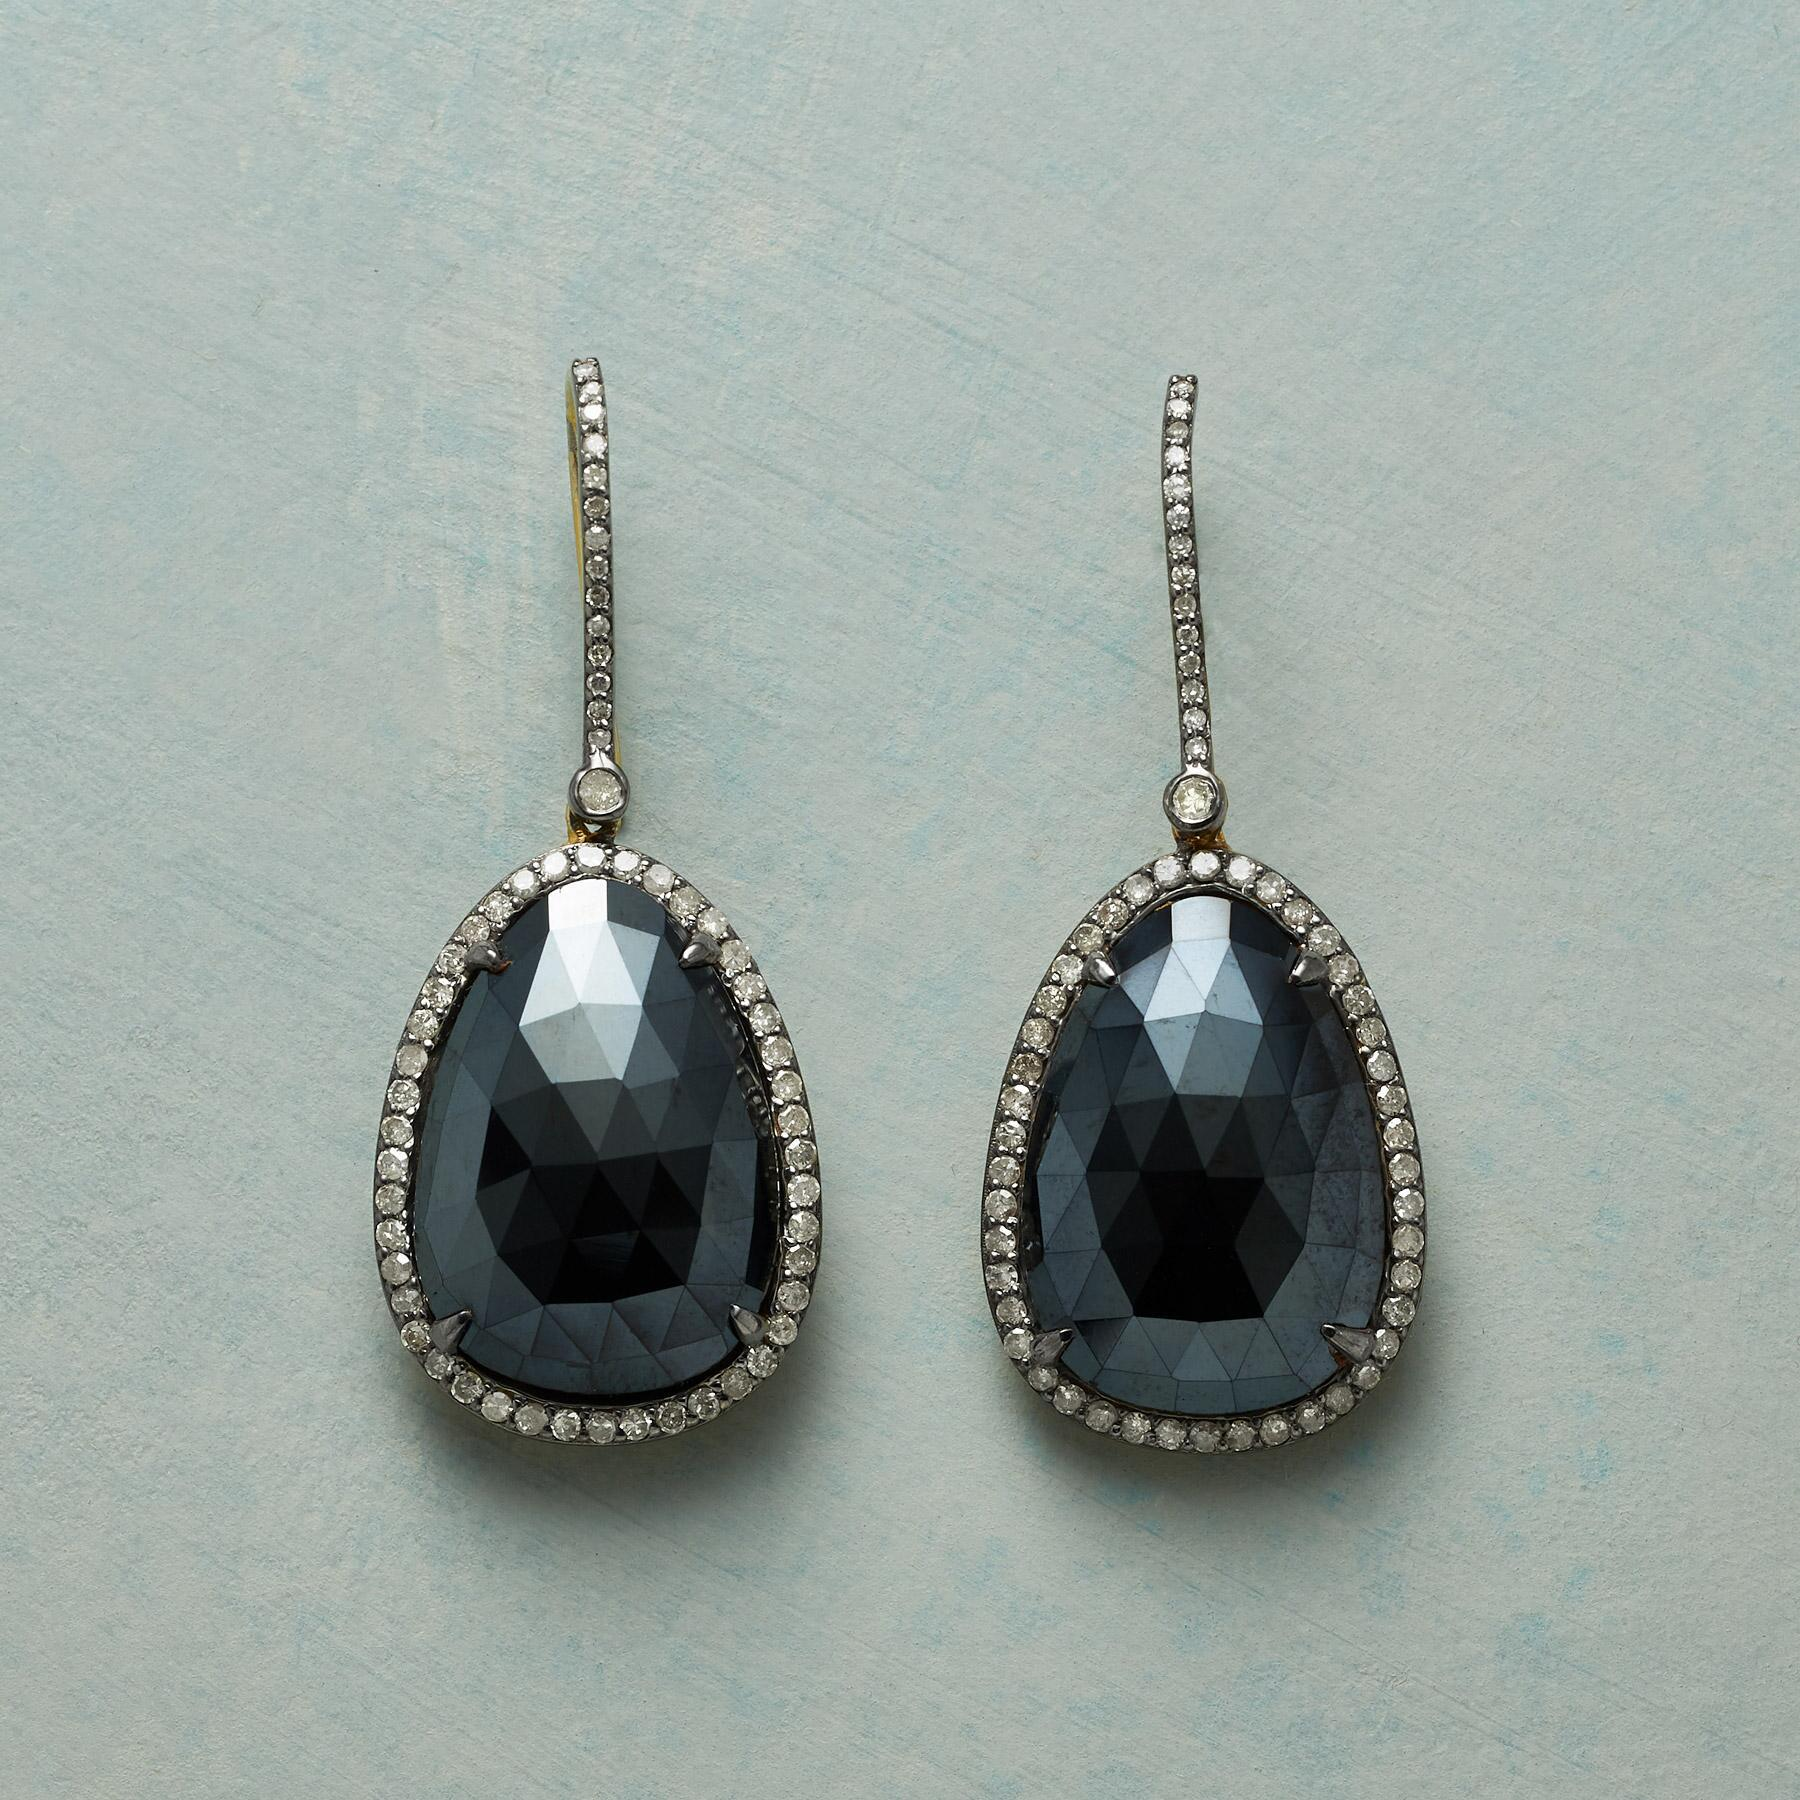 MAGNIFICENCE EARRINGS: View 1